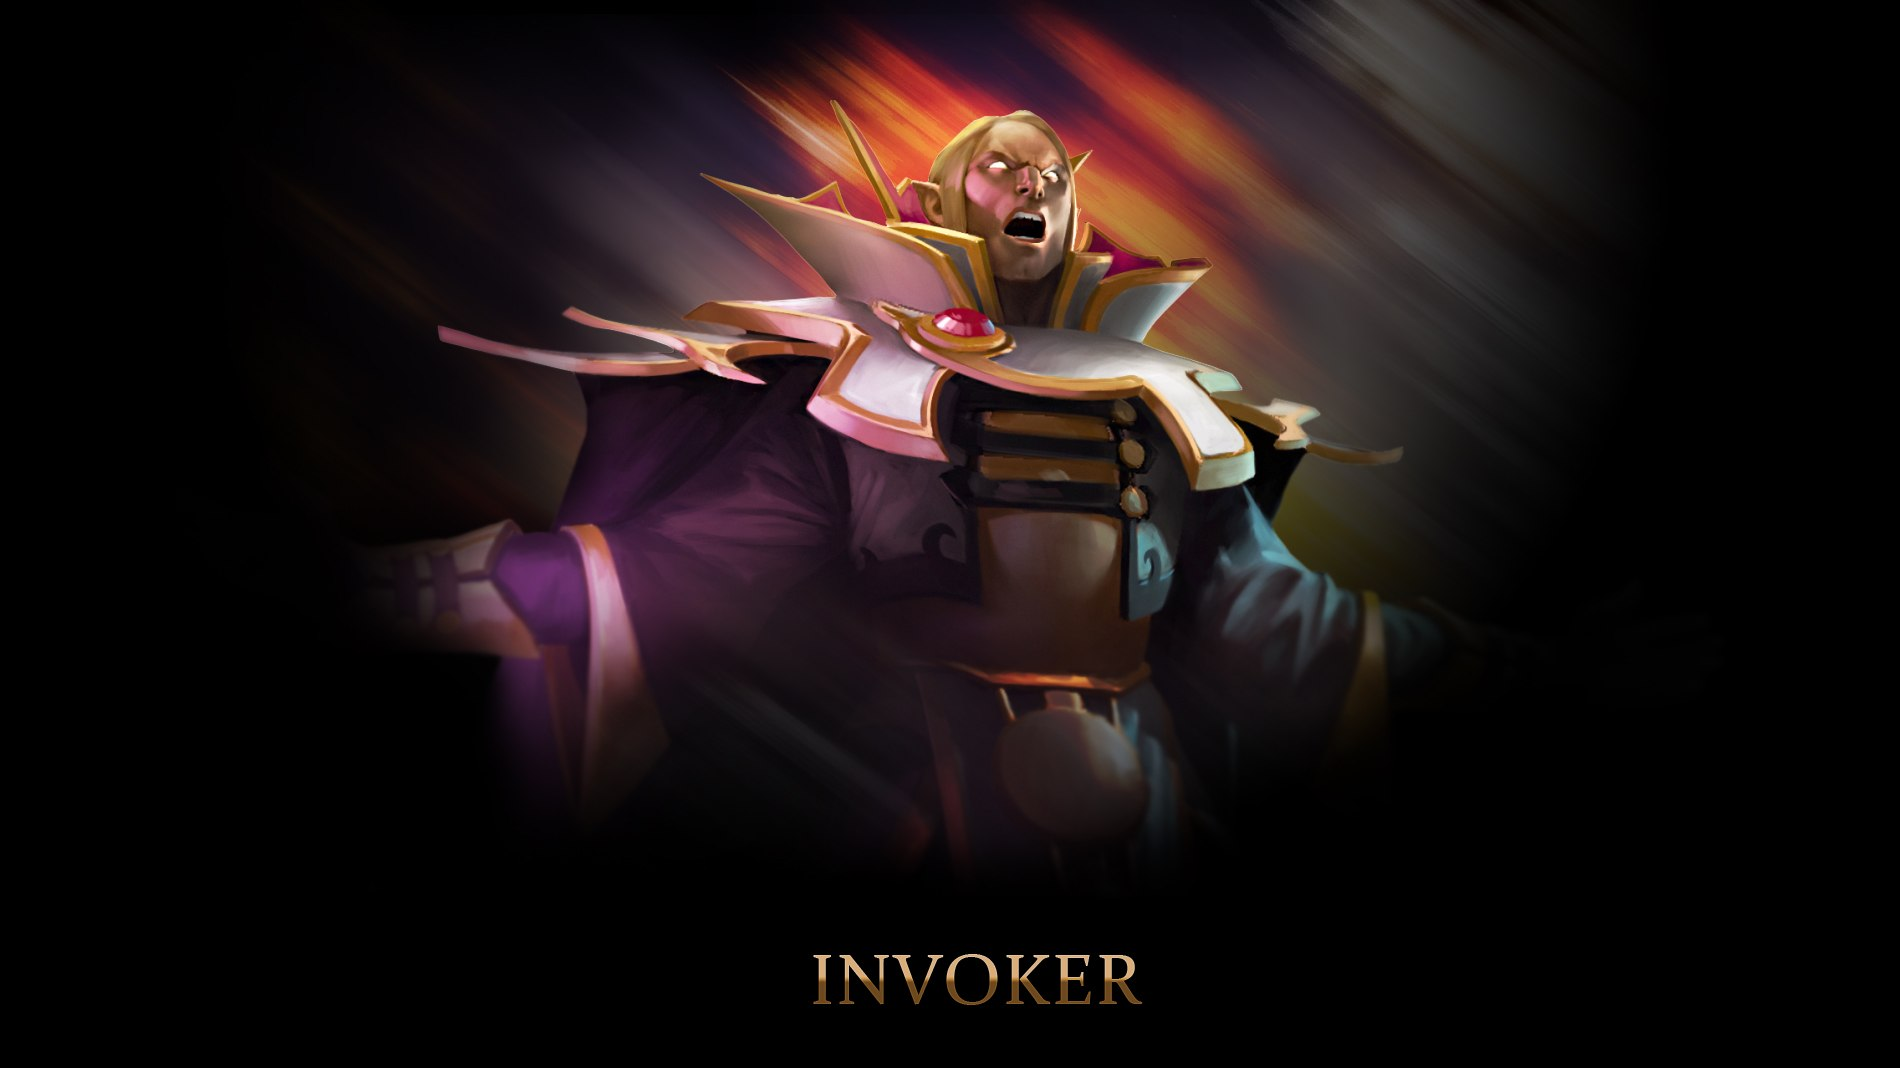 Invoker, Wallpapers Dota 2 Free Download HD